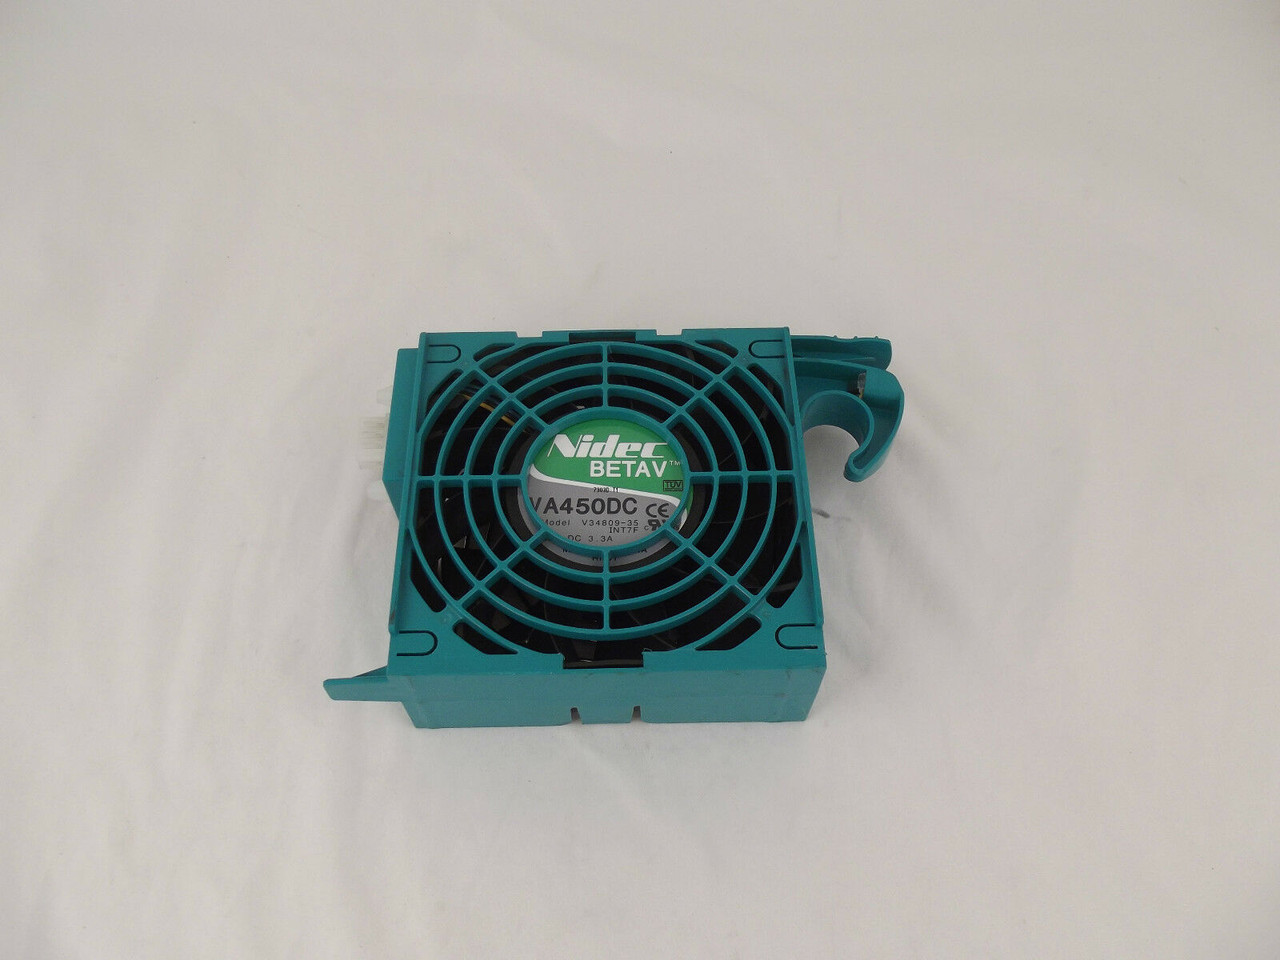 NIDEC BETAV VA450DC V34809-35 12V DC 3.3A Hot Swap Case Fan 55-3